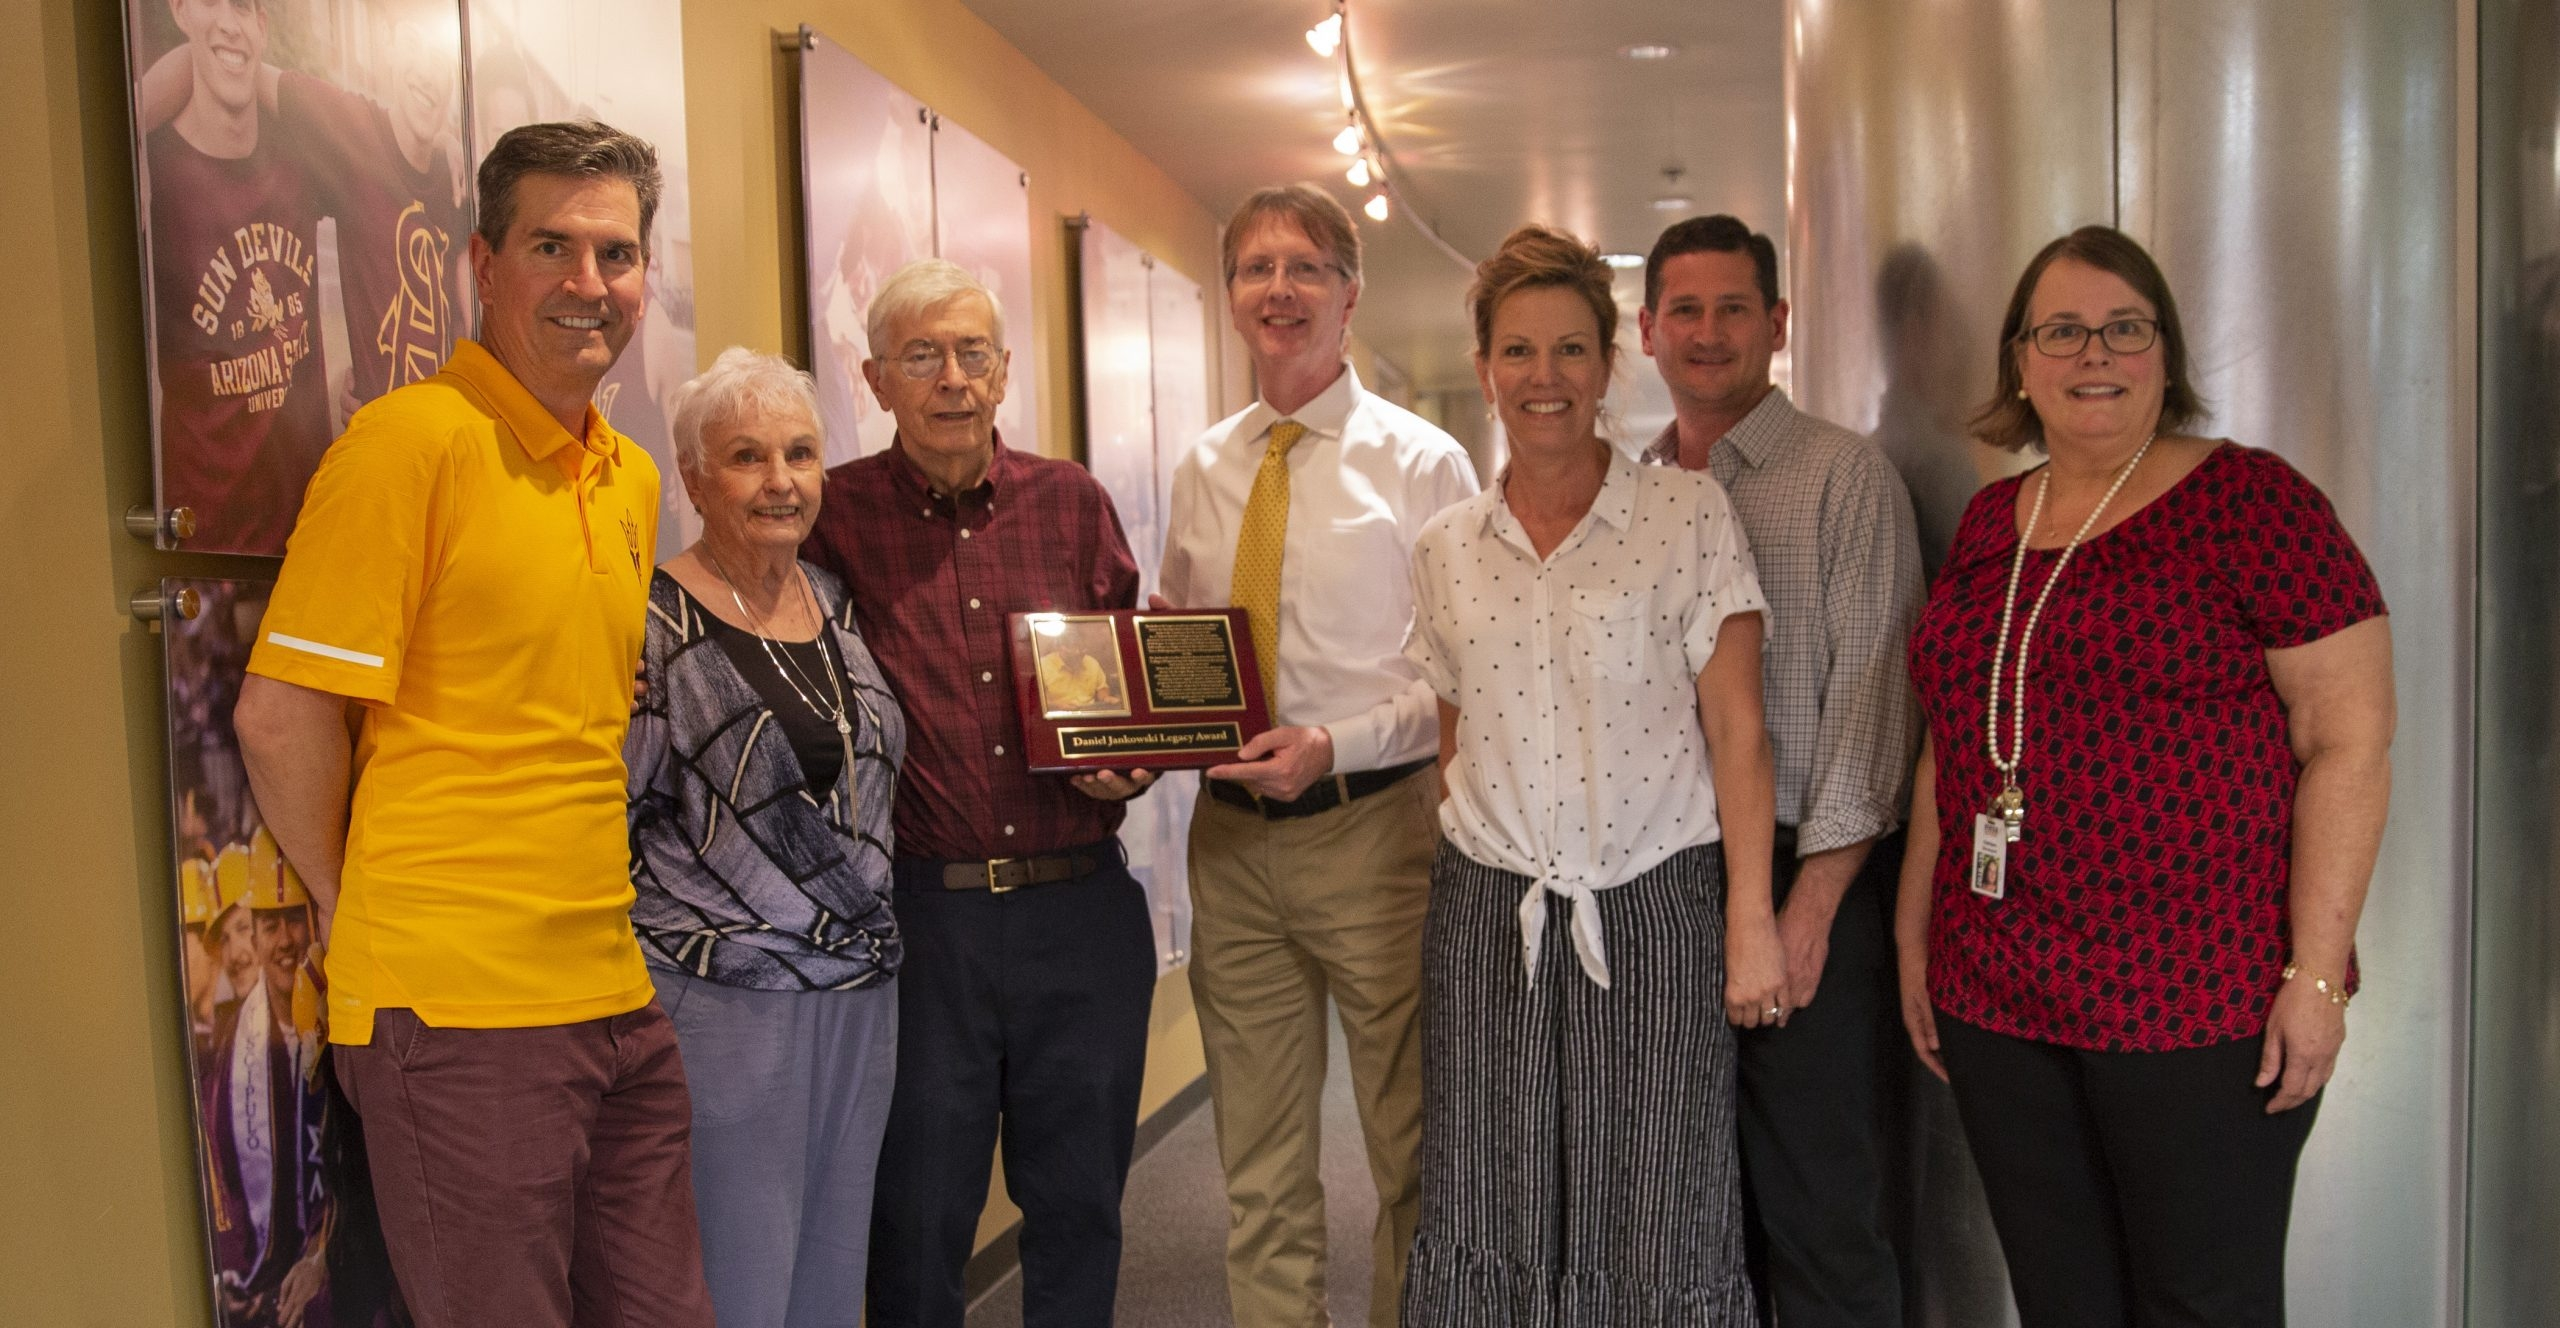 Daniel Jankowski with family and Fulton Dean Kyle Squires